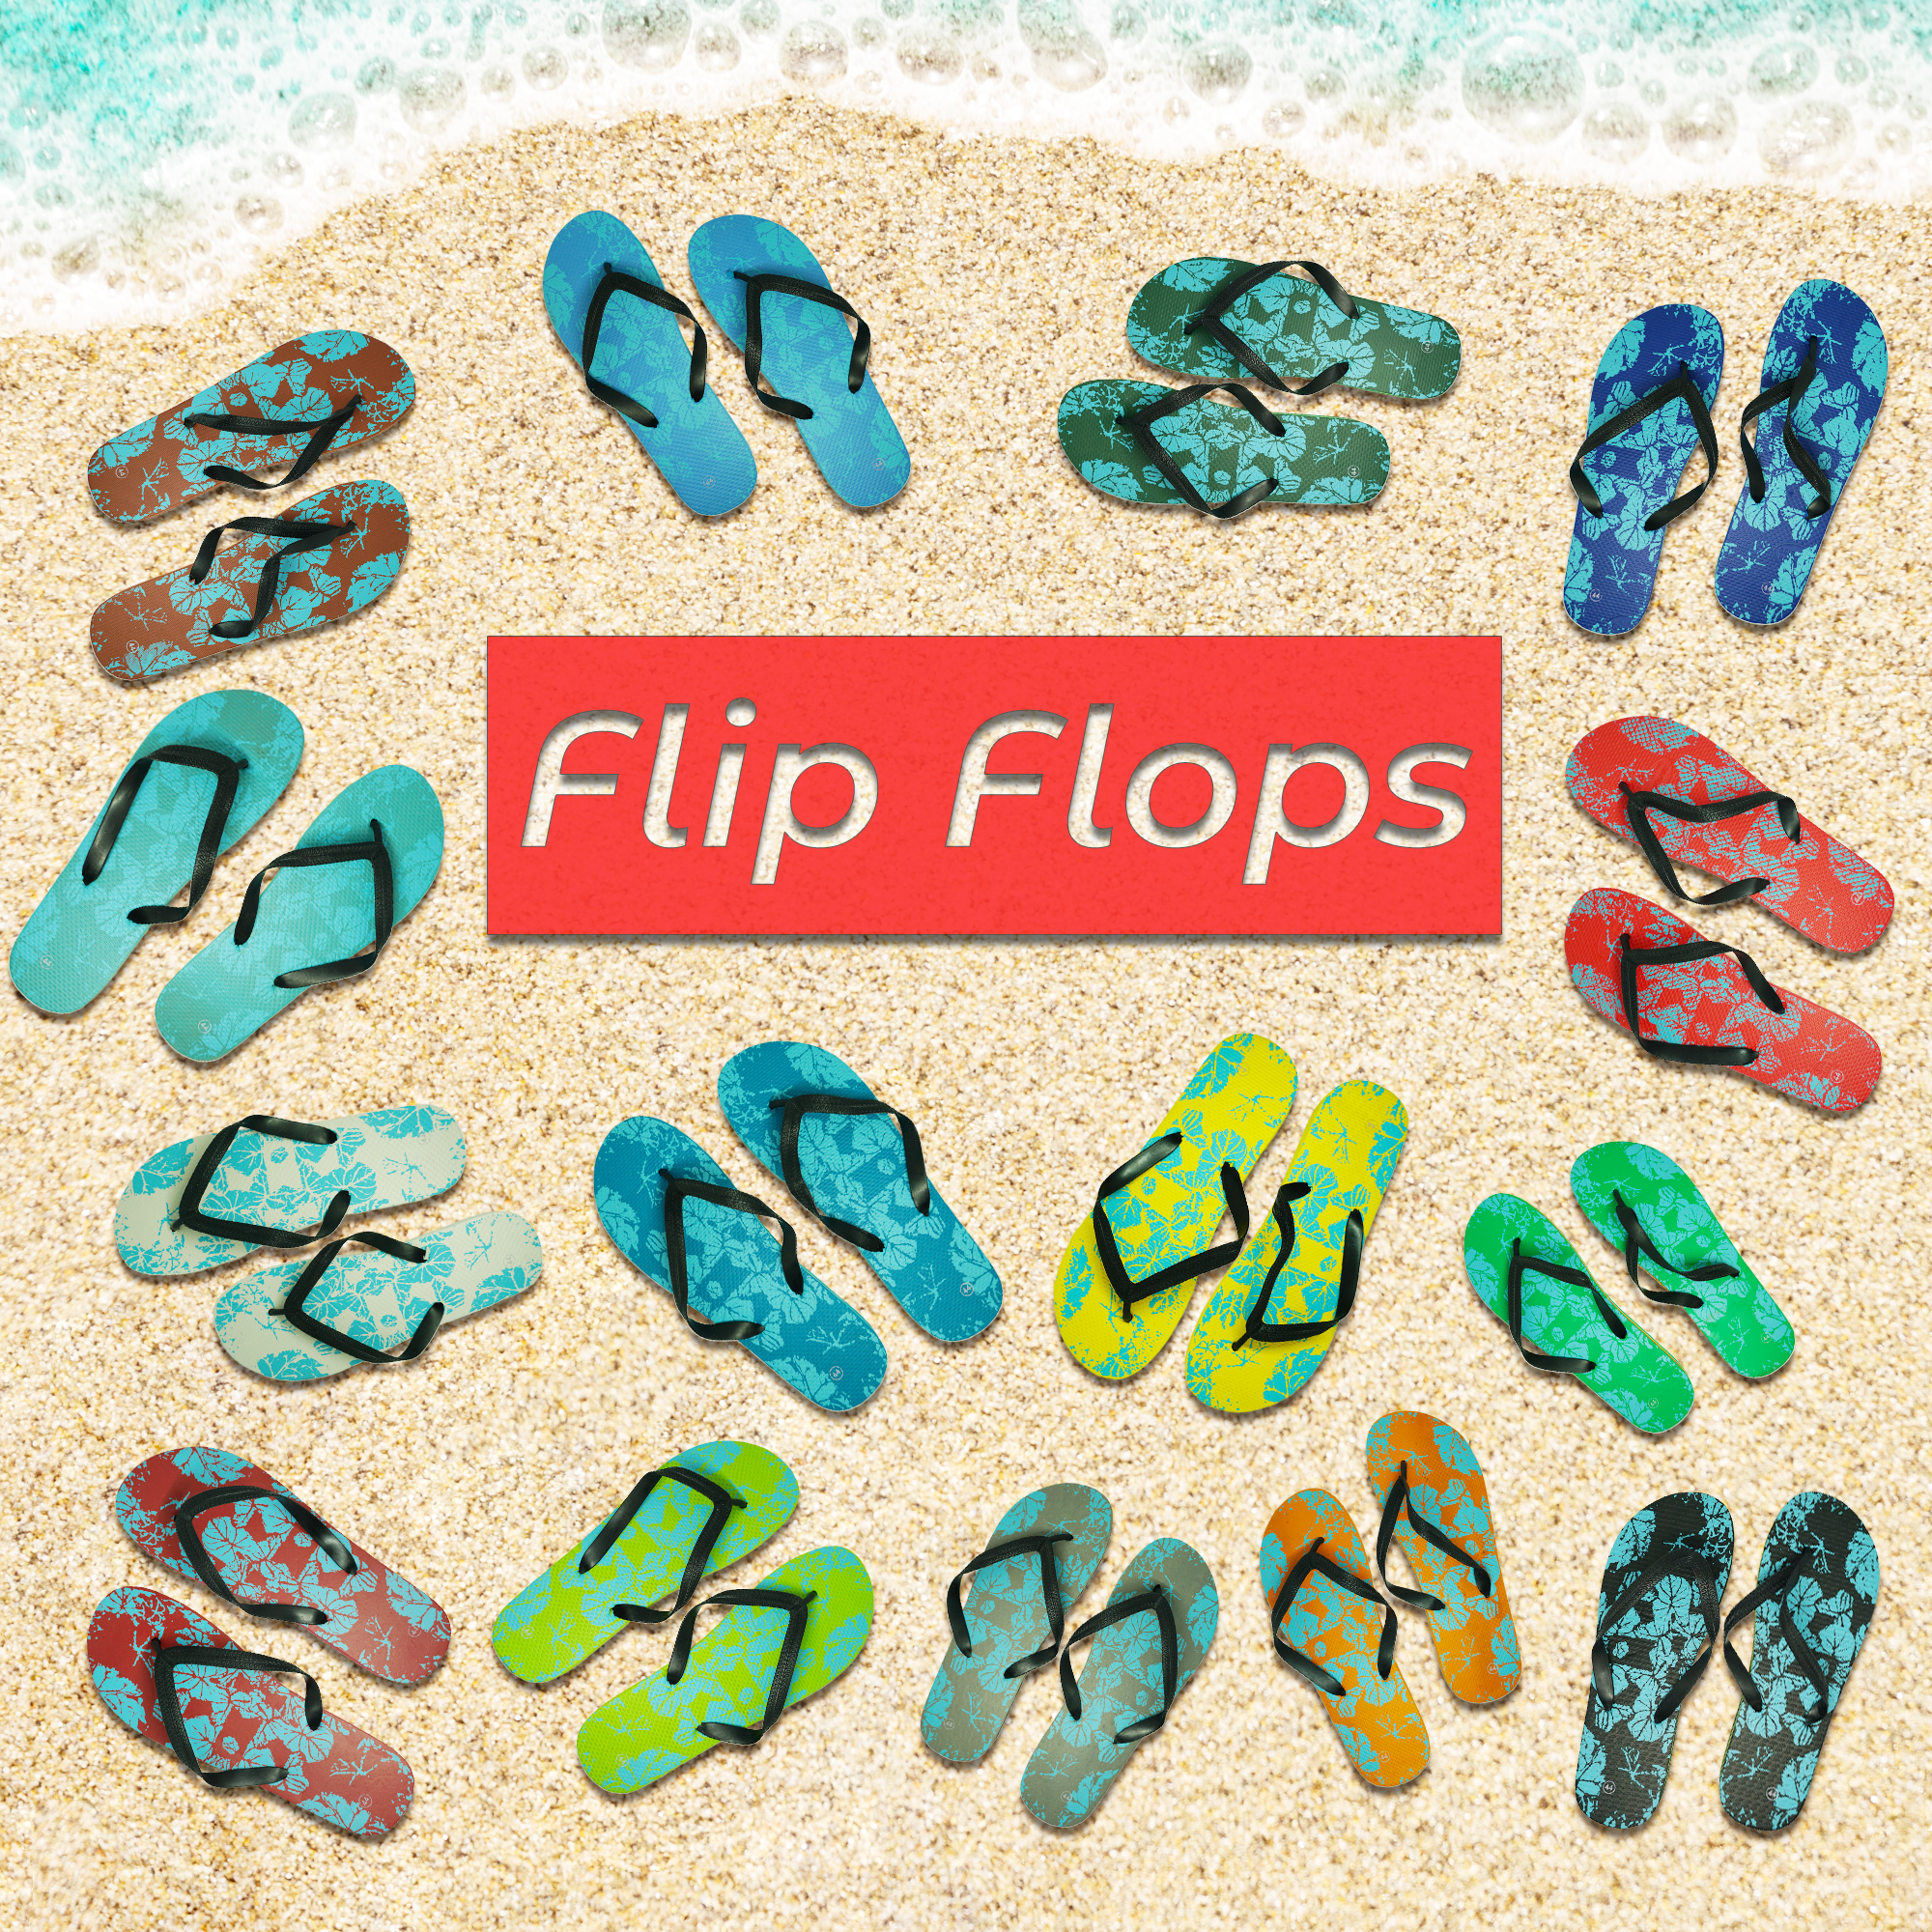 Fashion Home Pinch Non-slip Beach Flops Home Slippers 37/25cm_Mixed color